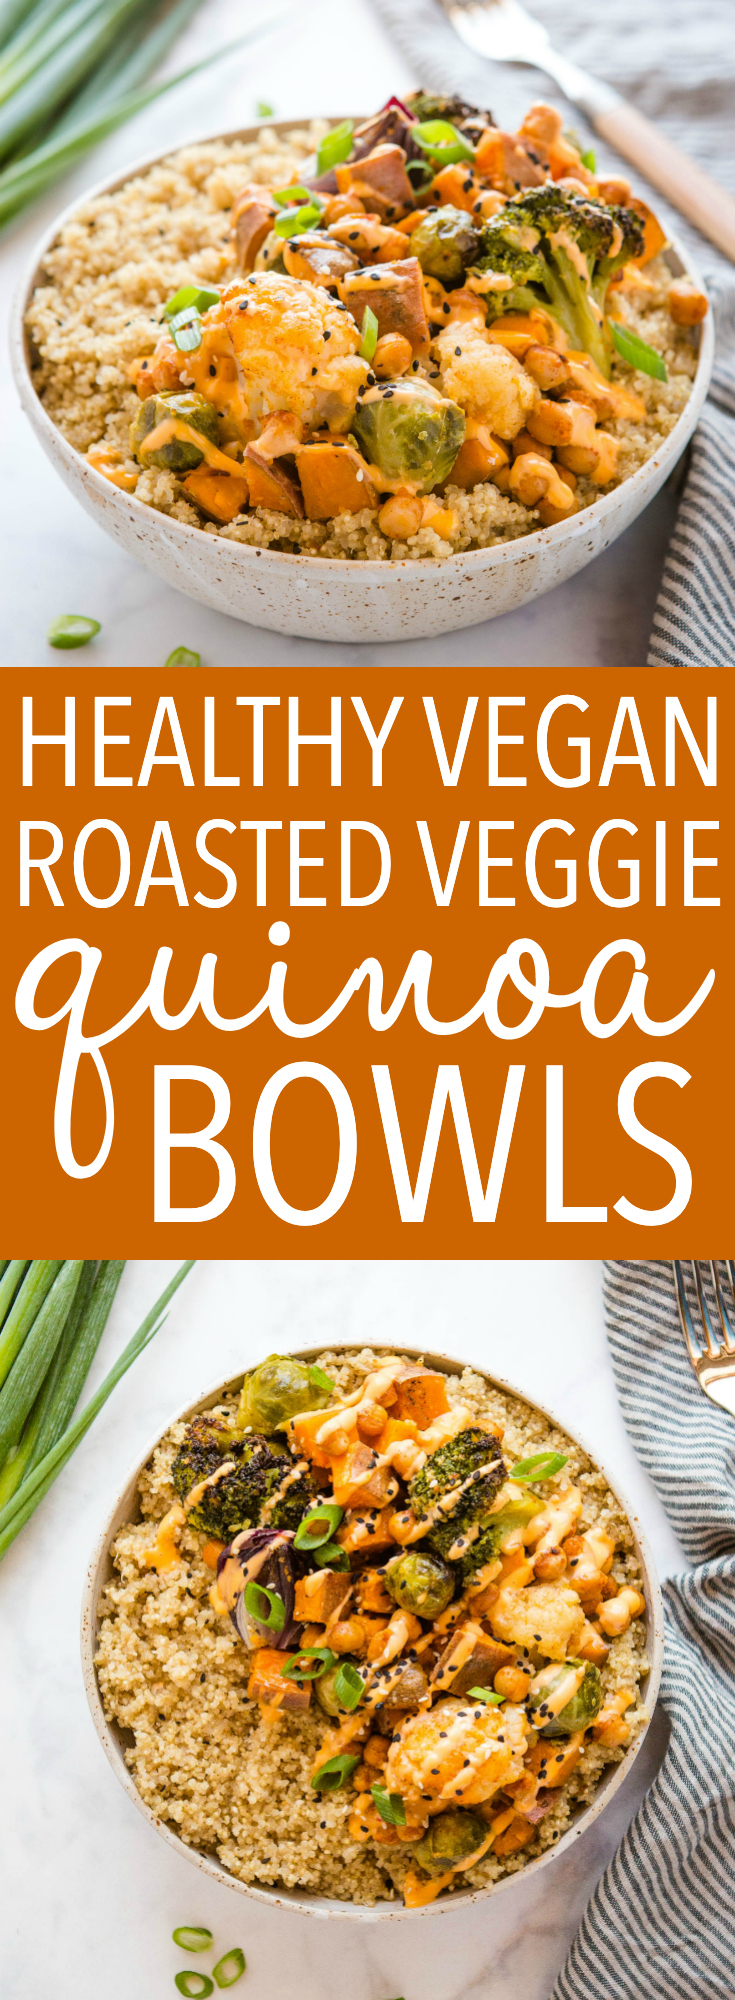 These Roasted Vegetable Quinoa Bowls are the perfect healthy lunch or dinner recipe that's great for meal prep! Make it vegetarian or vegan! Recipe from thebusybaker.ca! #quinoa #bowls #lunch #vegan #vegetarian #plantbased #protein #health #weightloss #healthyeating #vegetables #sweetpotato #mealprep via @busybakerblog